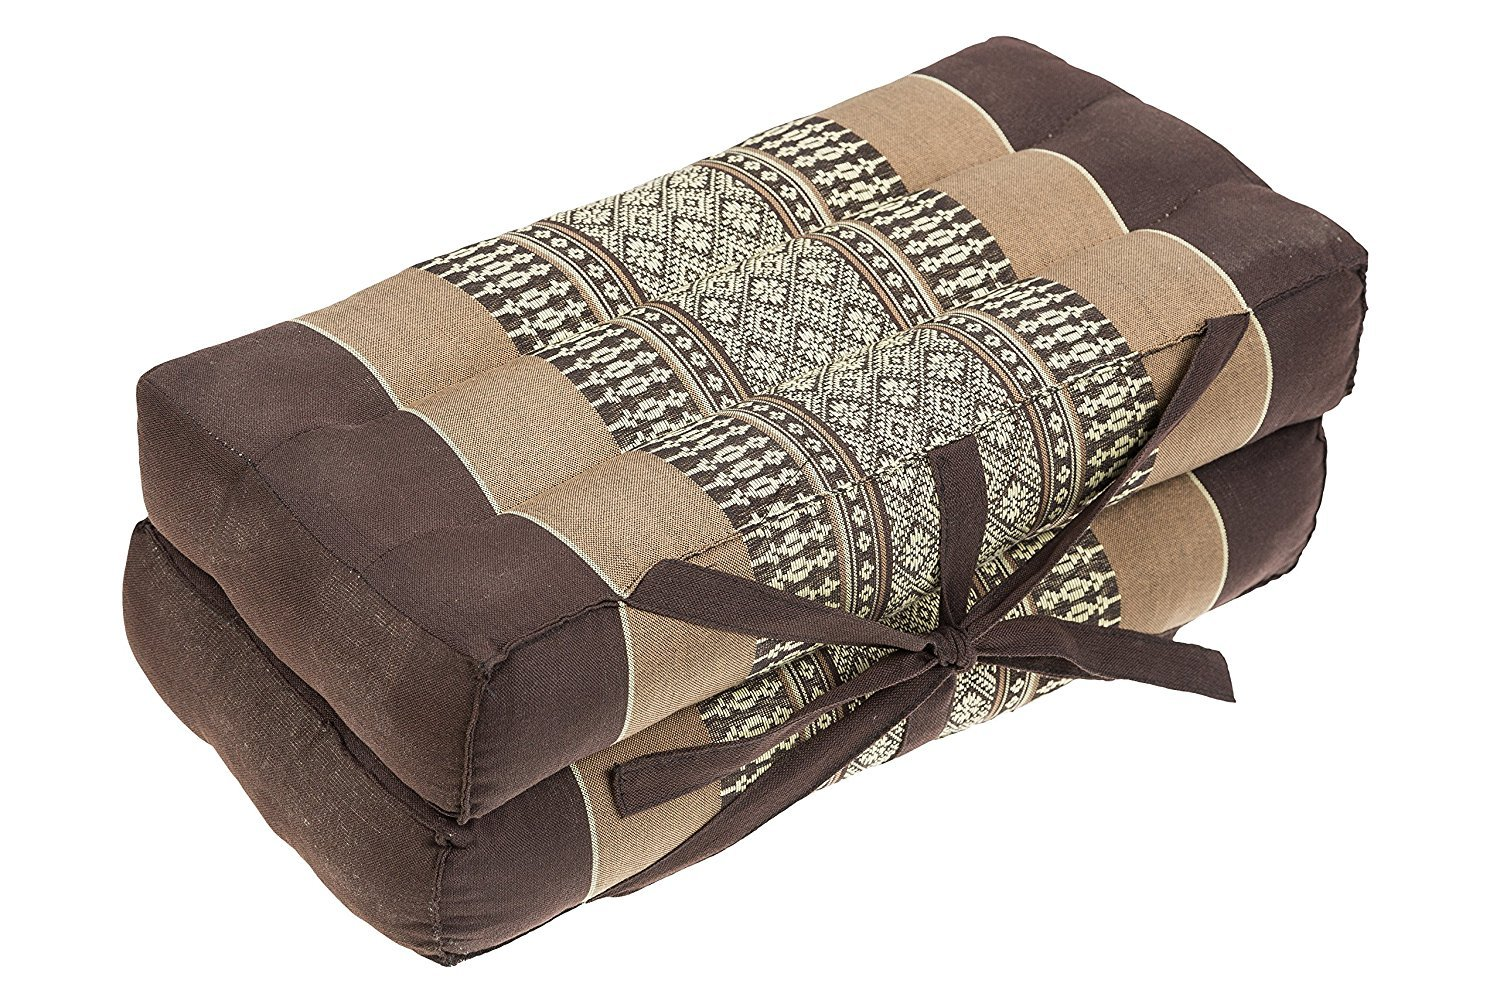 "Mongkol Brand Thai Foldable Pillow, Seat/Chairpad and Meditation Cushion 100% Cotton & Natural Kapok Stuffing,Brown-Beige, 16"" by Mongkol Brand"